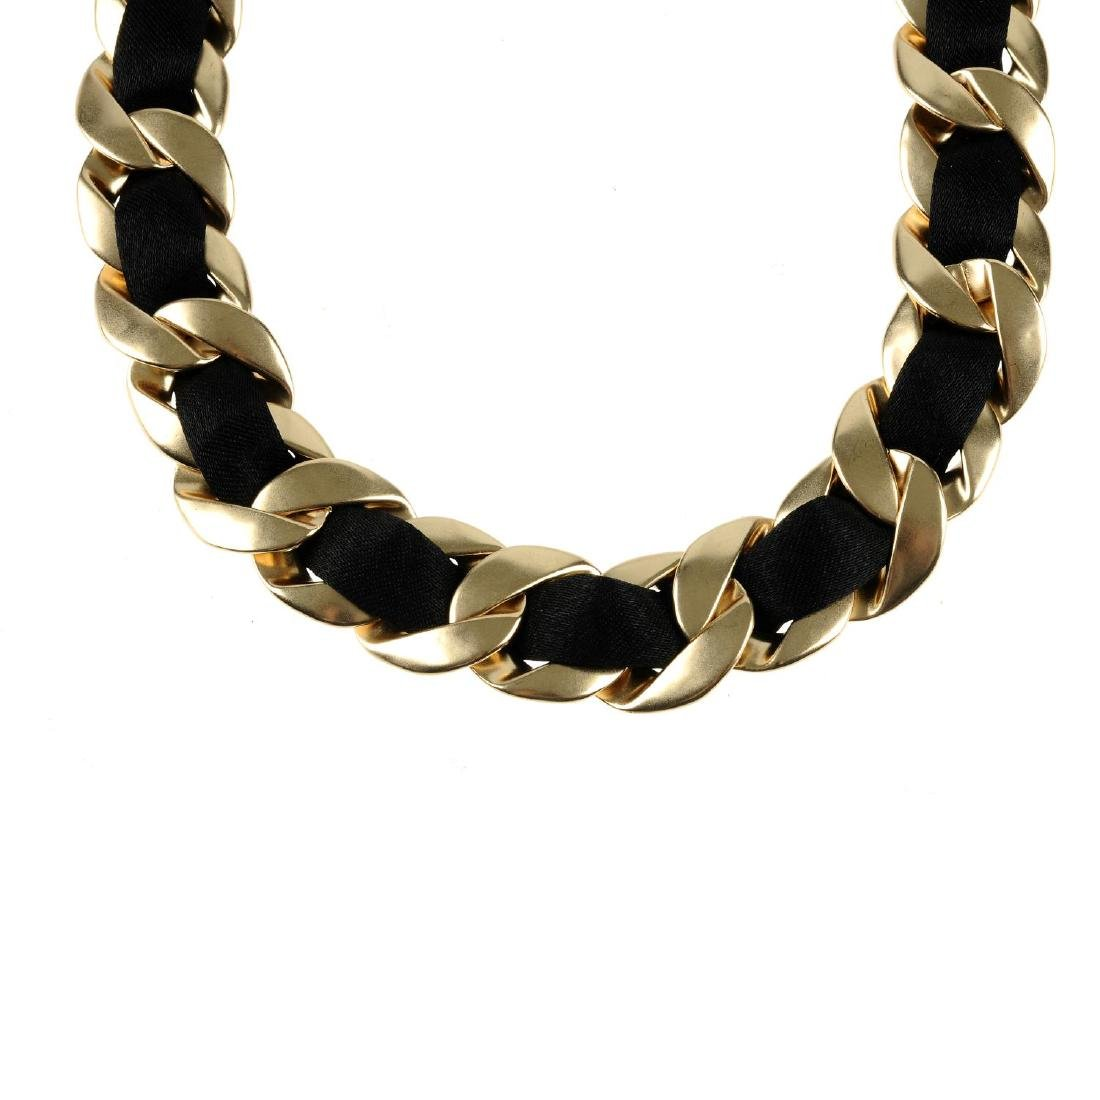 CHANEL - a necklace. Designed as a flat curb-link